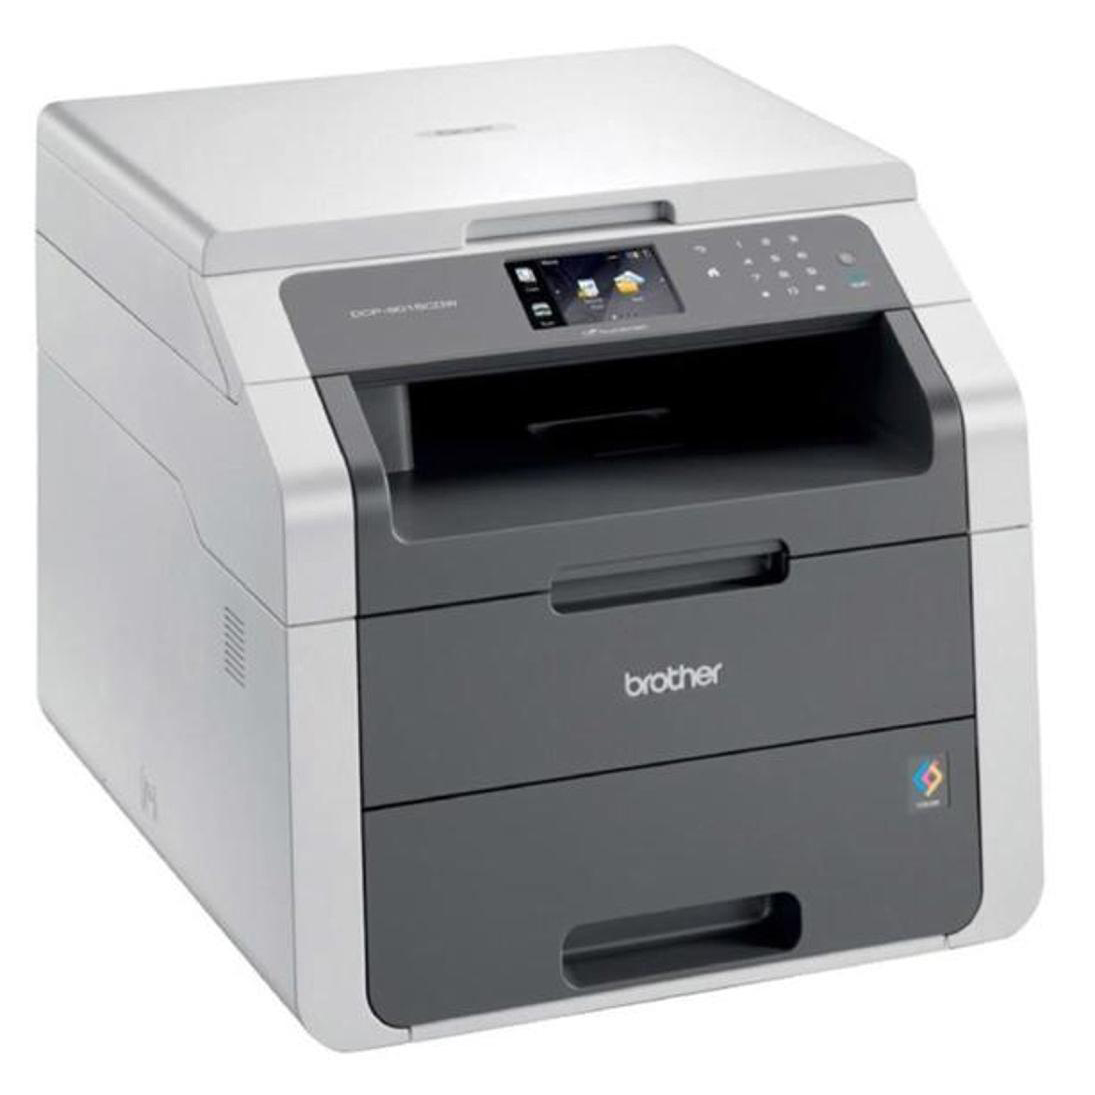 Brother DCP9015CDW Colour Laser A4  Duplex Printer with Wireless NetworkRef DCP9015CDWZU1